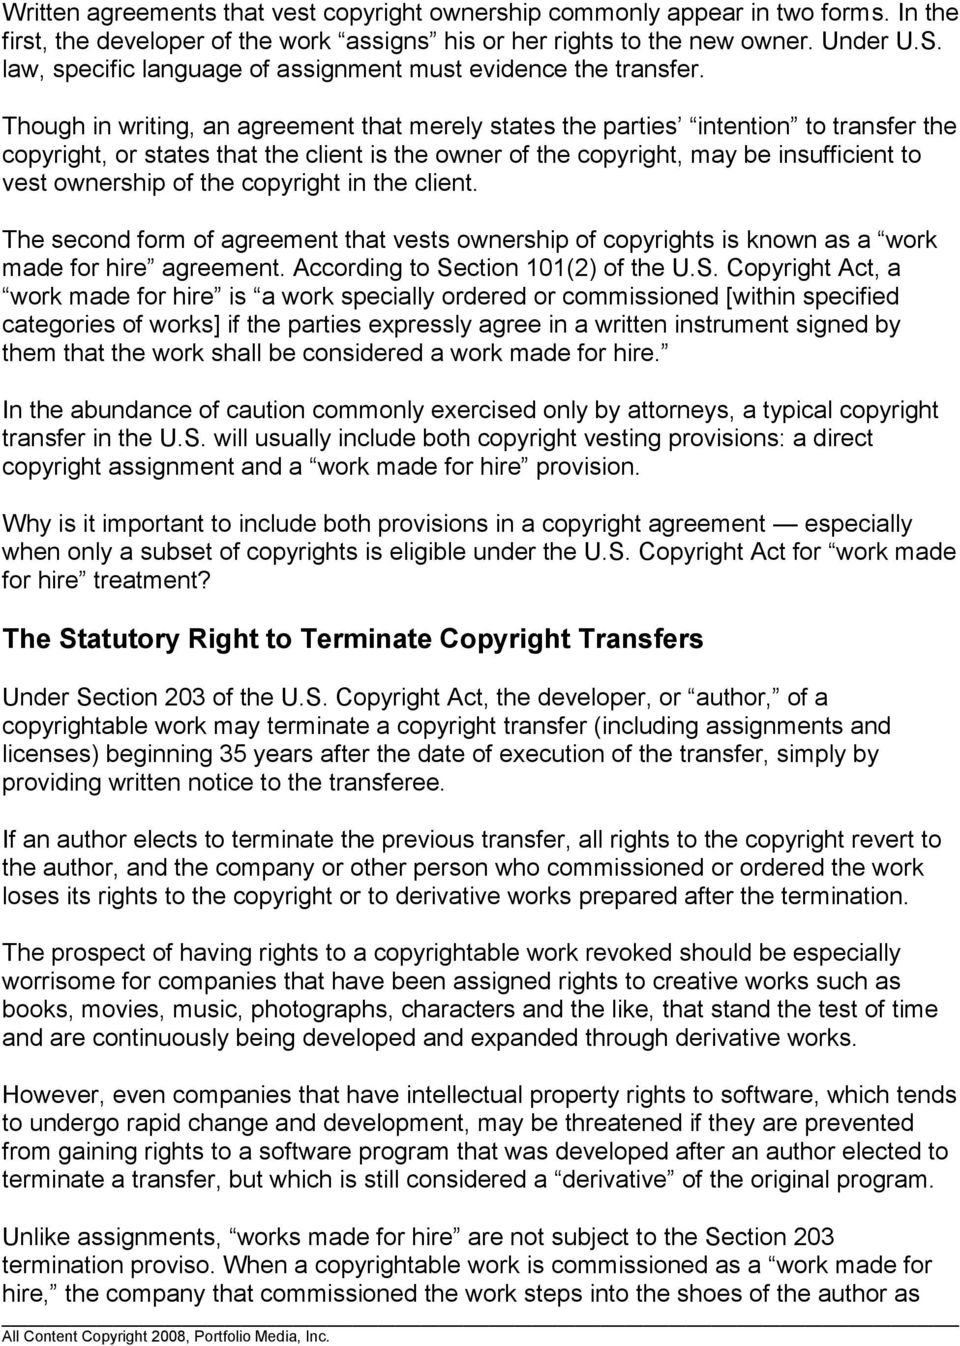 Securing Copyright Ownership A Question Of Timing Pdf